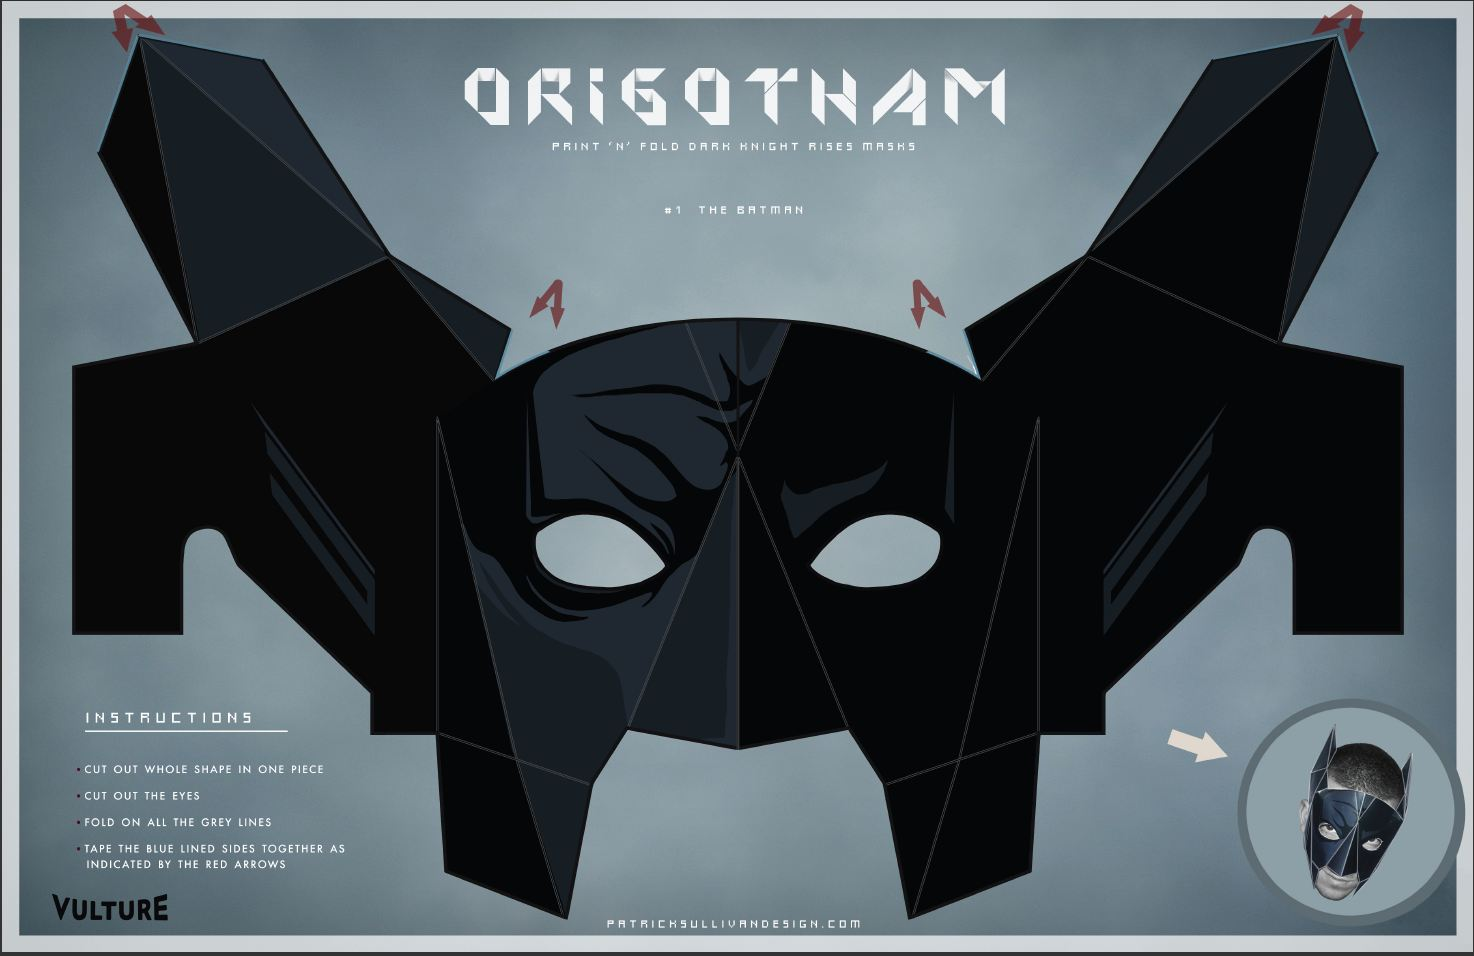 BAT BLOG BATMAN TOYS and COLLECTIBLES ORIGOTHAM BATMAN